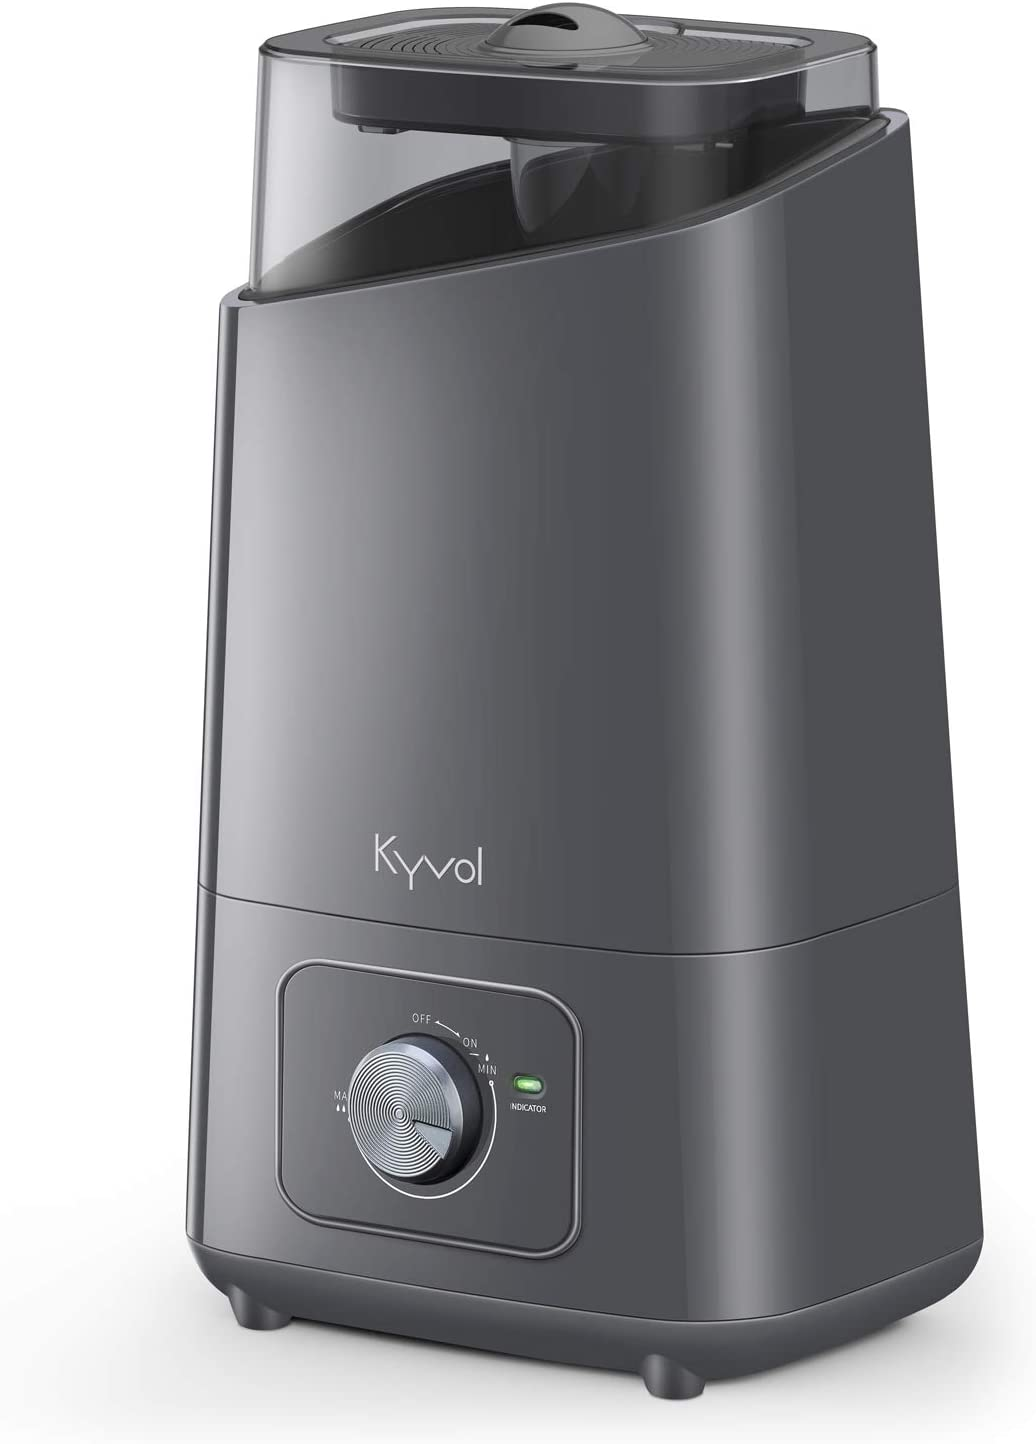 Kyvol Vigoair HD3 Humidifier, 4.5L Cool Mist Humidifiers, Whisper Quiet Ultrasonic Humidifiers for Large Bedroom, up to75 Hours Runtime Auto Shut-off, 360° Nozzle, Ideal for Plants/Home/Office/Baby Room